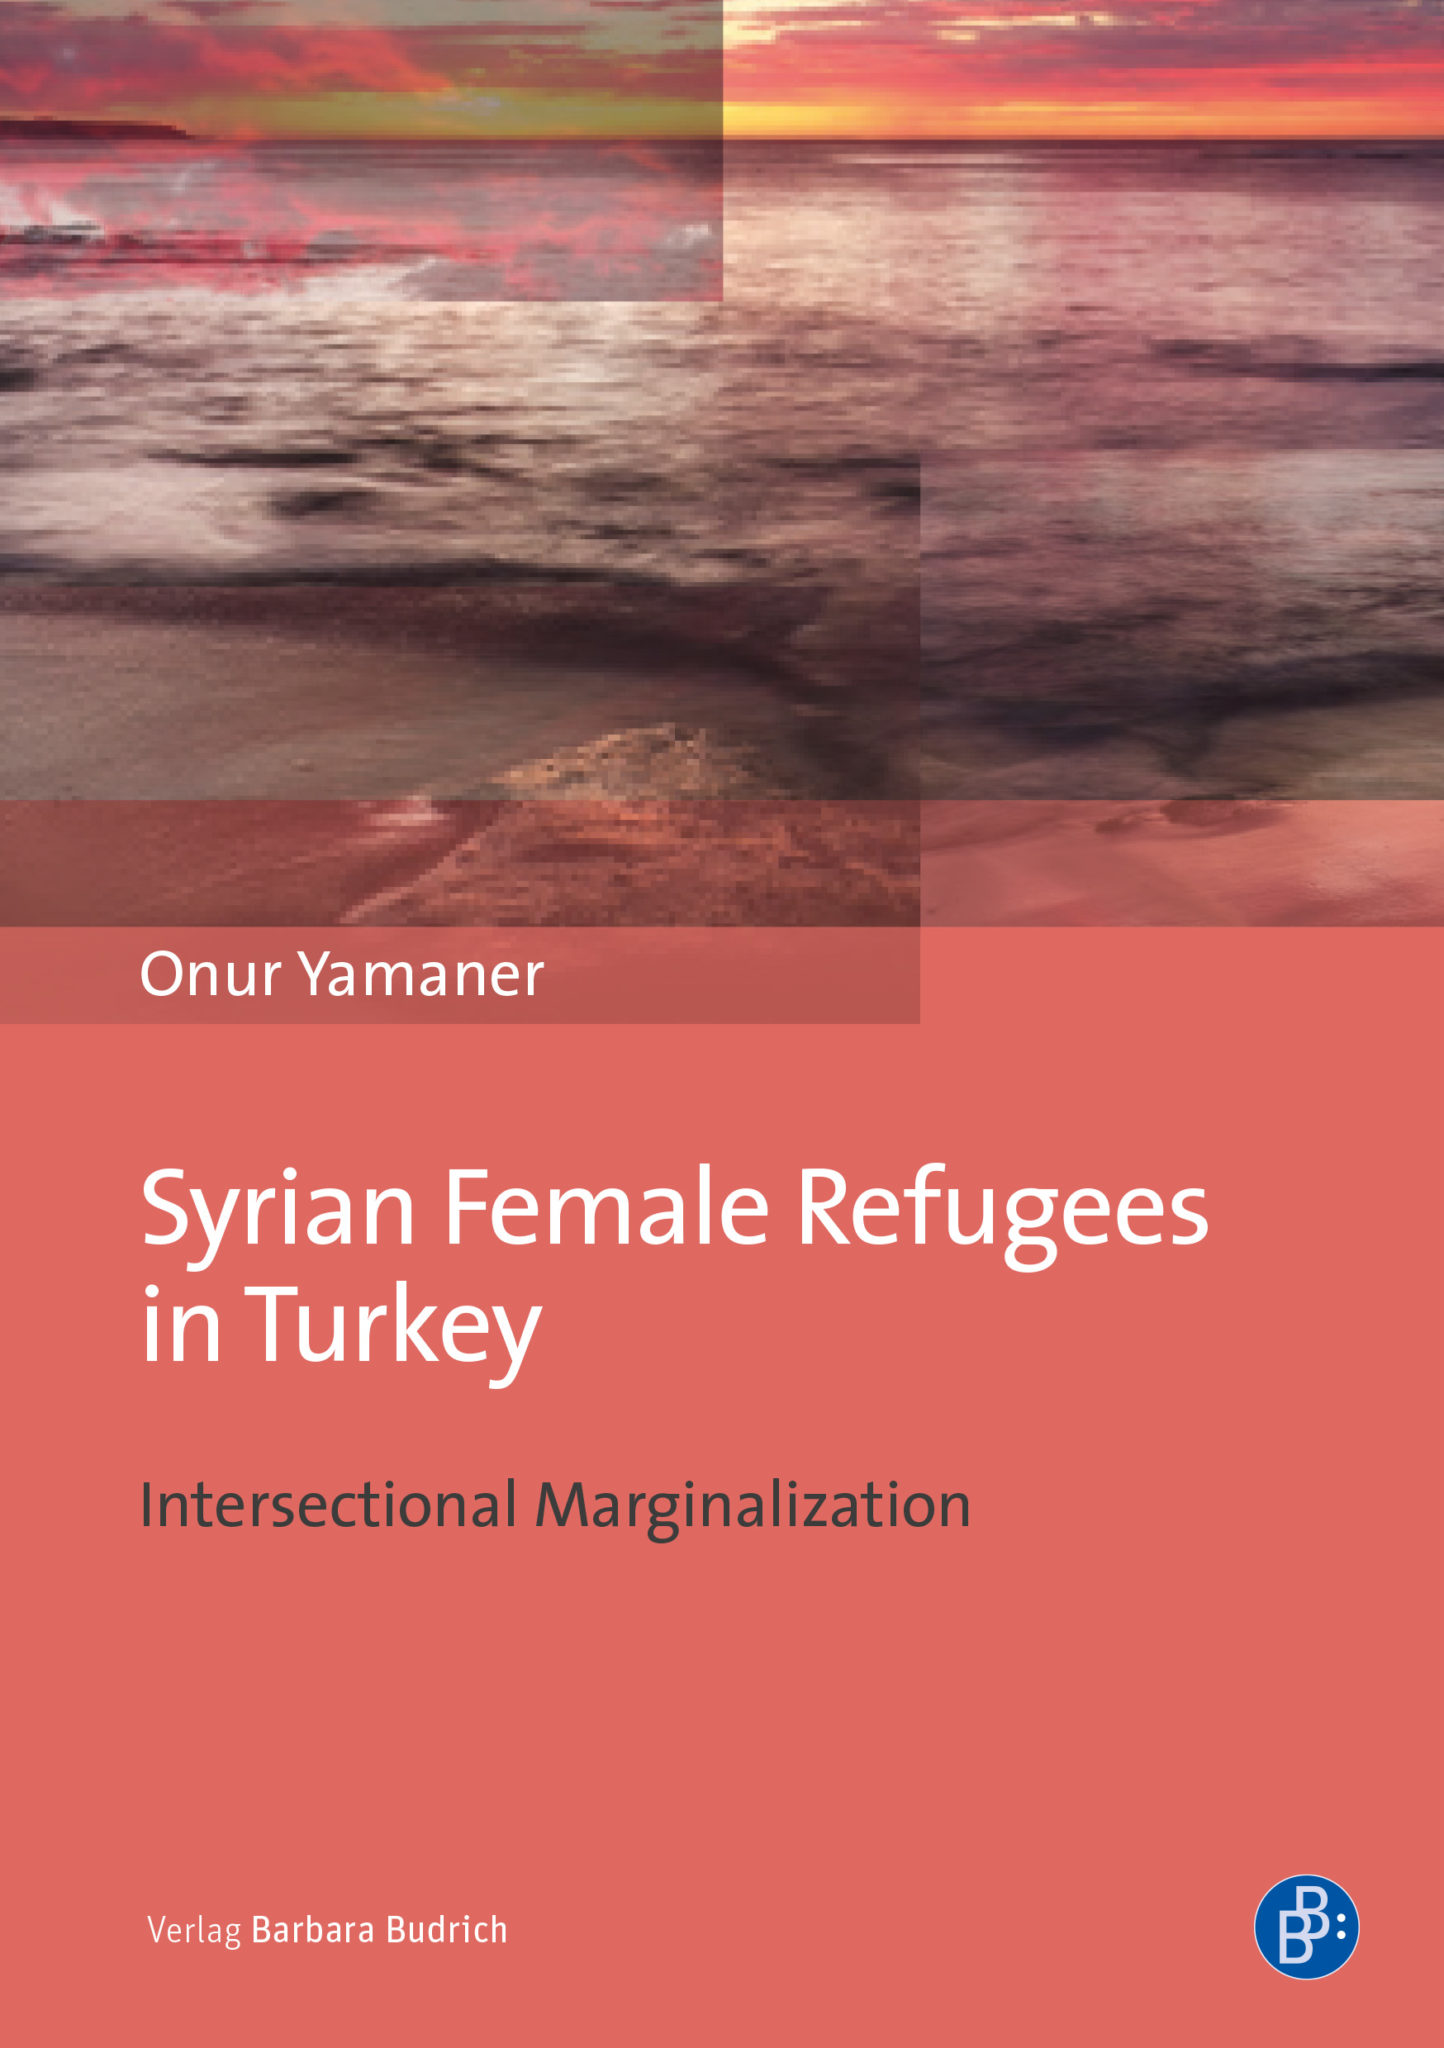 Yamaner: Syrian Female Refugees in Turkey.Intersectional Marginalization. ISBN: 978-3-8474-2502-1. Verlag Barbara Budrich.